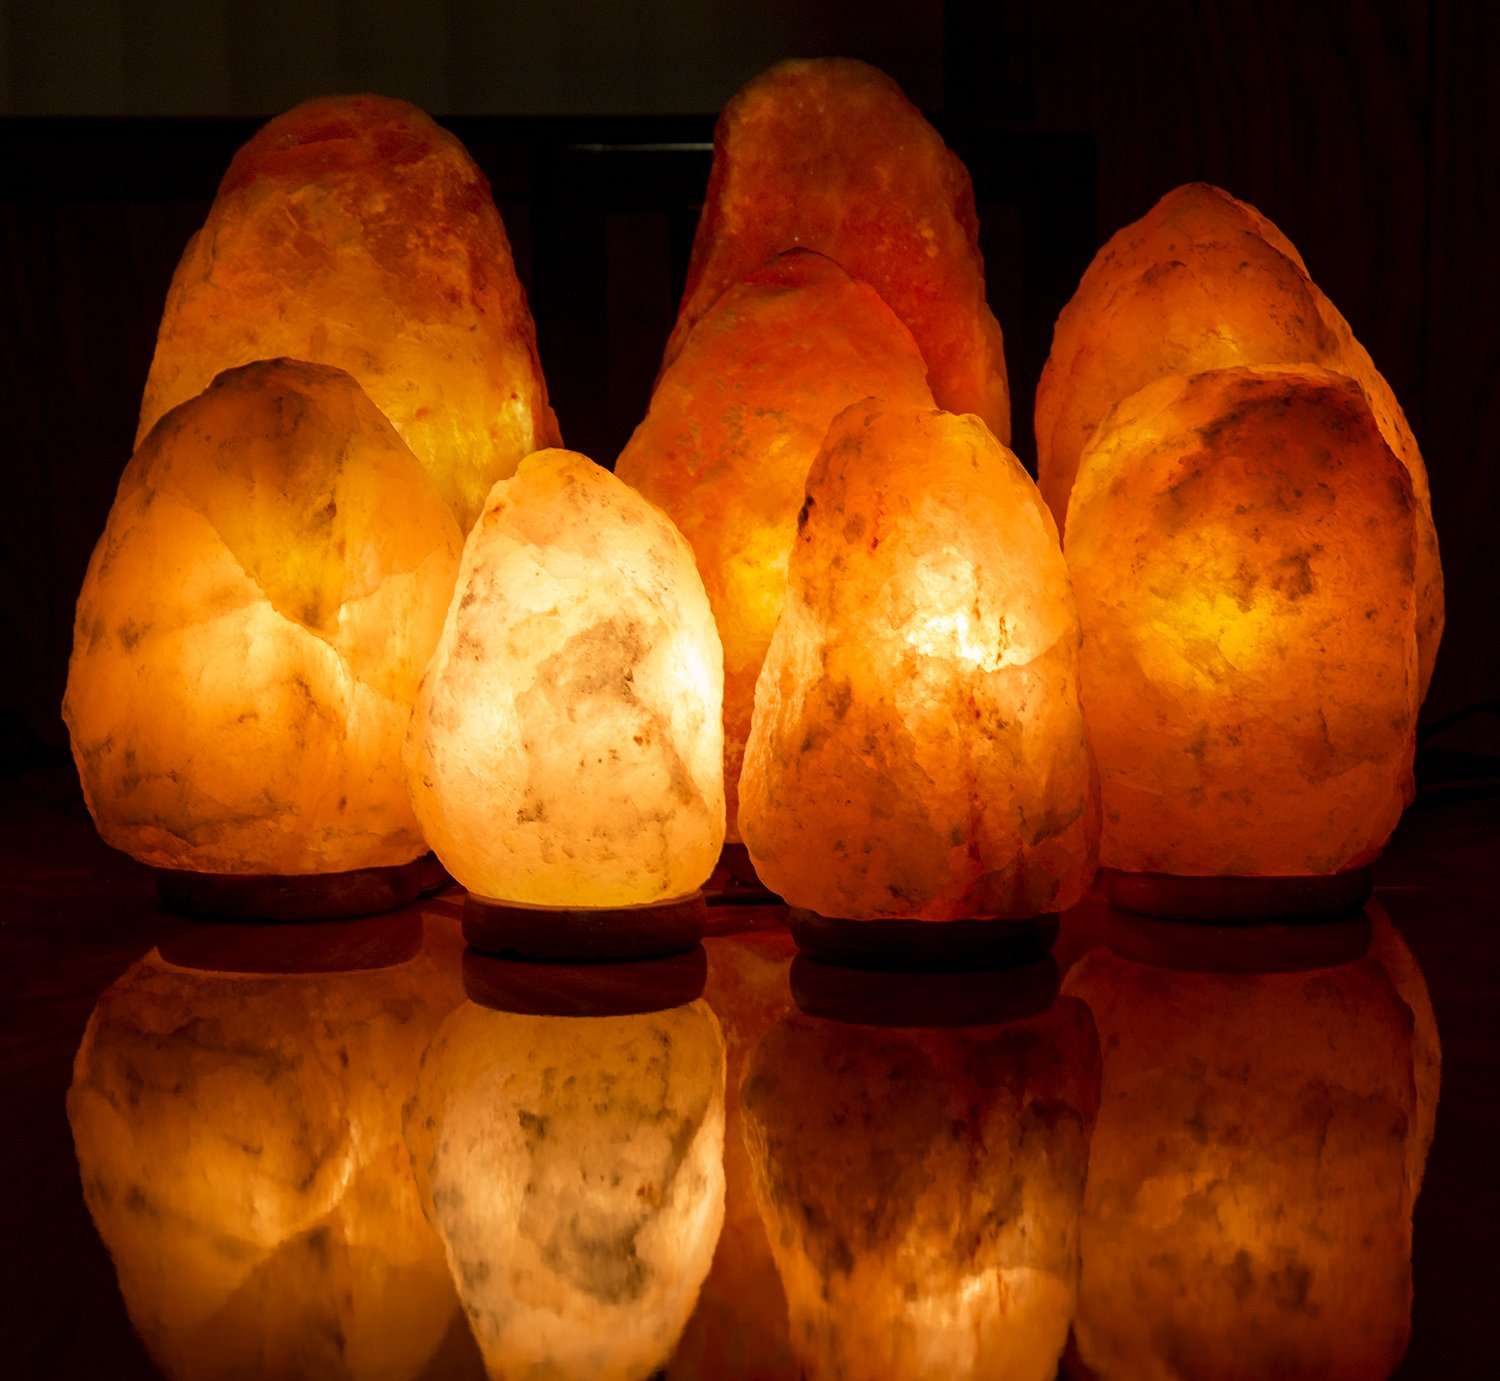 Crystal Decor 6'' to 14'' Inch Dimmable Hand Crafted Natural Himalayan Salt Lamp On Wooden Base - 8 to 9 inches by CRYSTAL DECOR (Image #7)